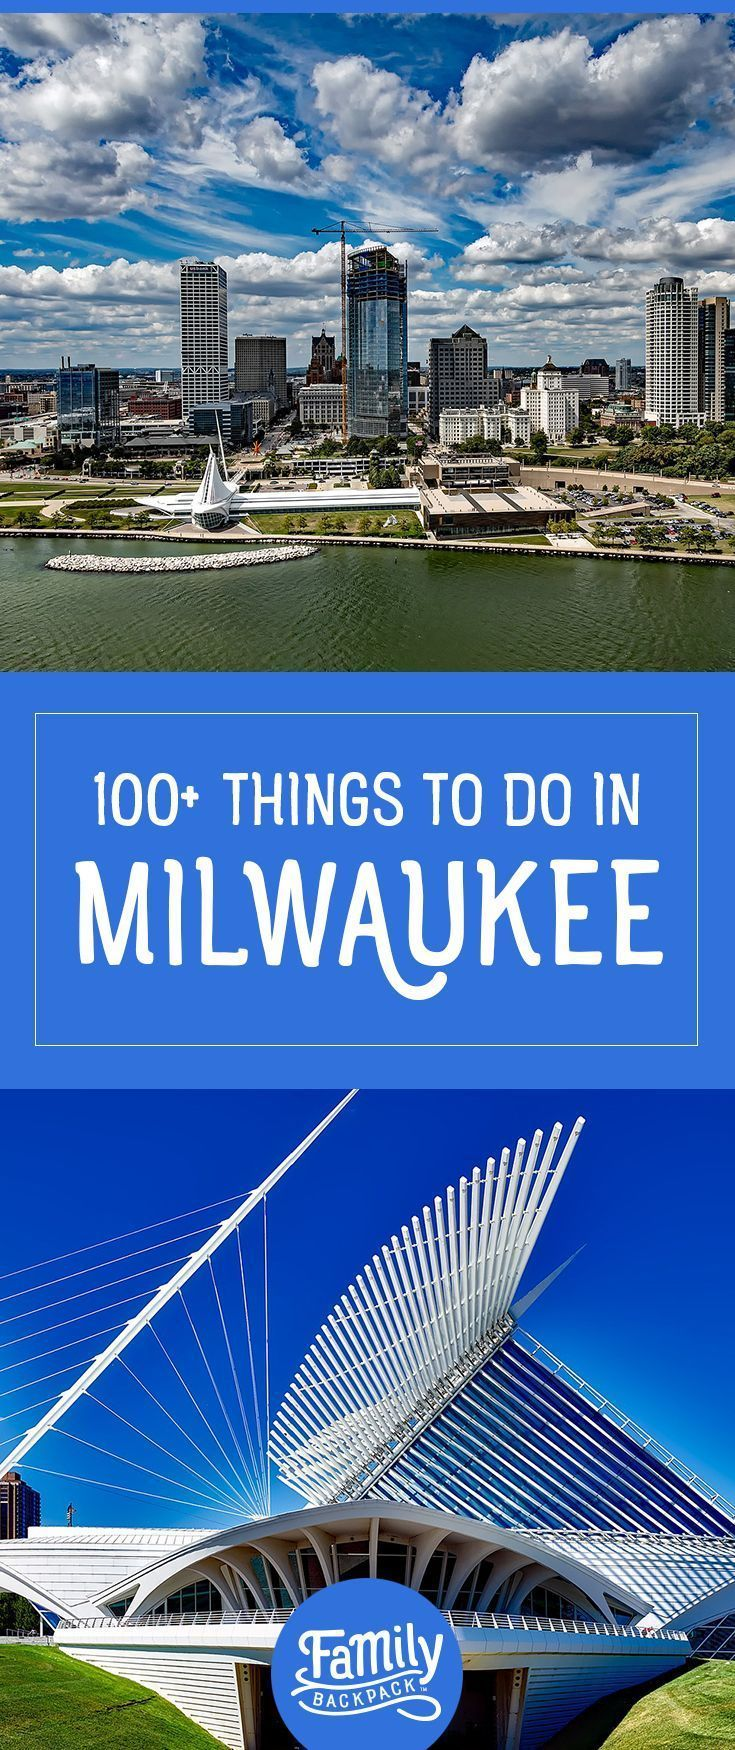 100+ Things to do when travelling to Milwaukee- If you find yourself traveling to #Wisconsin soon, you'll definitely want to take time to visit #Milwaukee! The Family Backpack has gathered tons of tips and suggestions to provide you with 100+ #fun #thingstodoin Milwaukee. It's like your own, free travel guide! Explore the city #downtown or go on a hiking #adventure in Havenwoods State Forest! Milwaukee is sure to not disappoint!